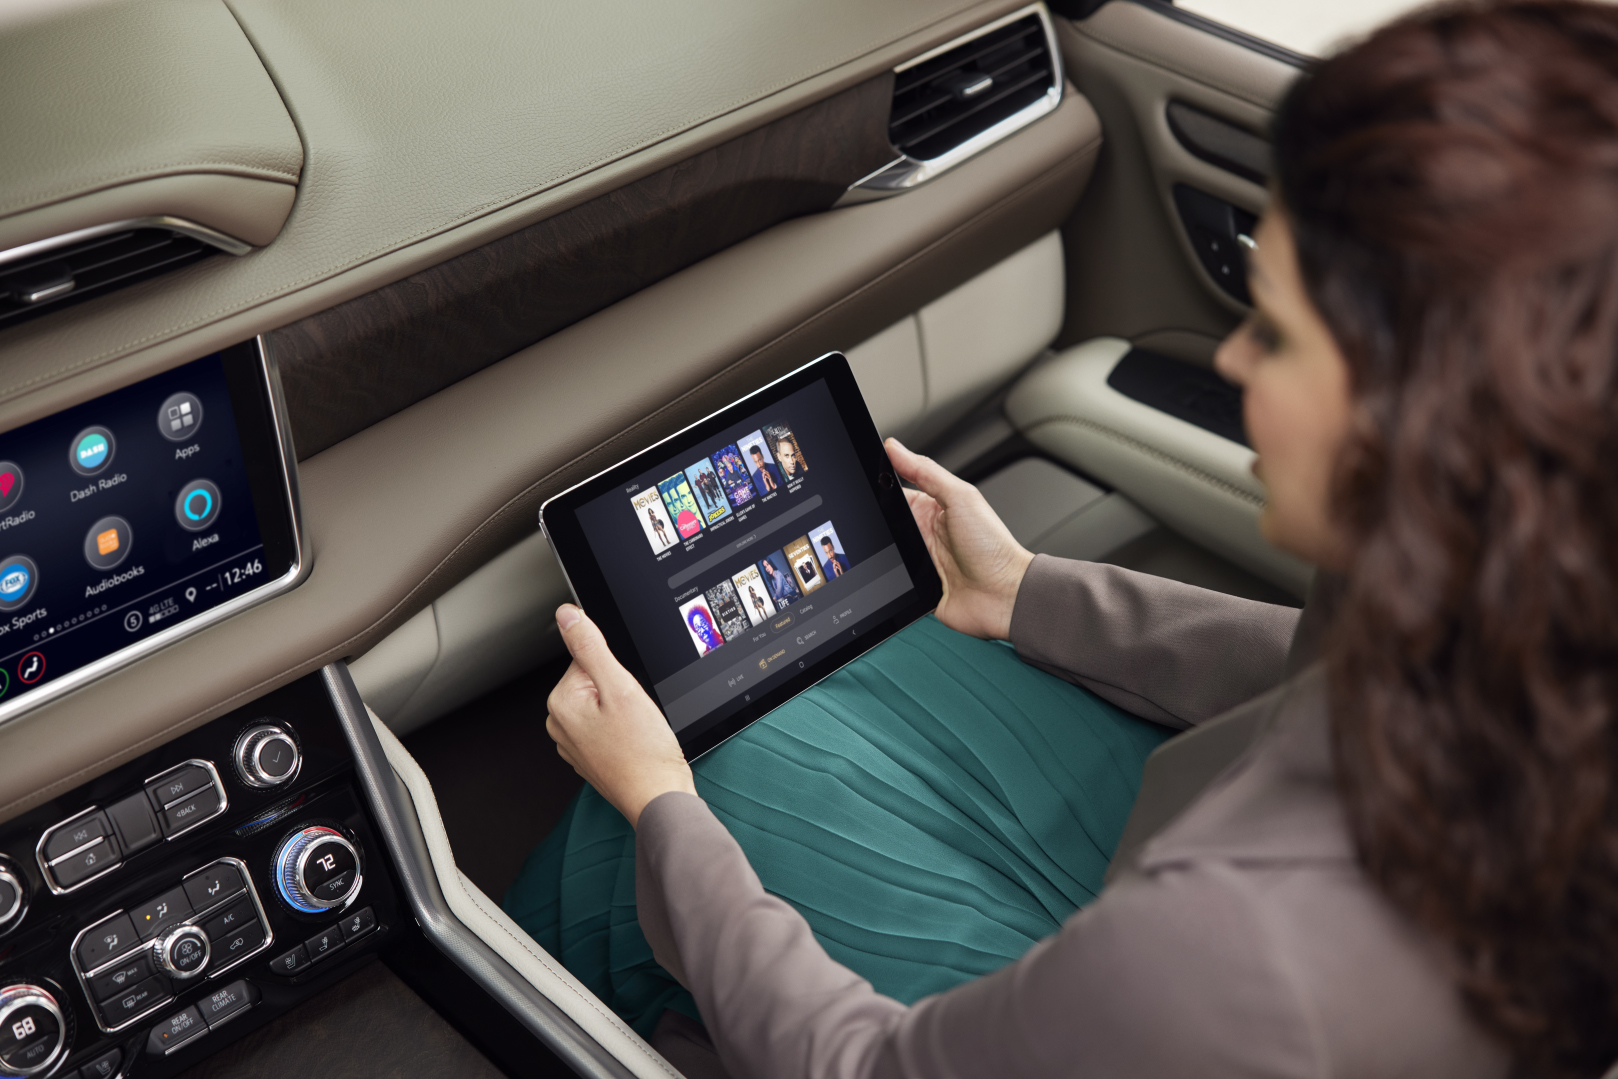 GMC owner using wifi hotspot for her tablet